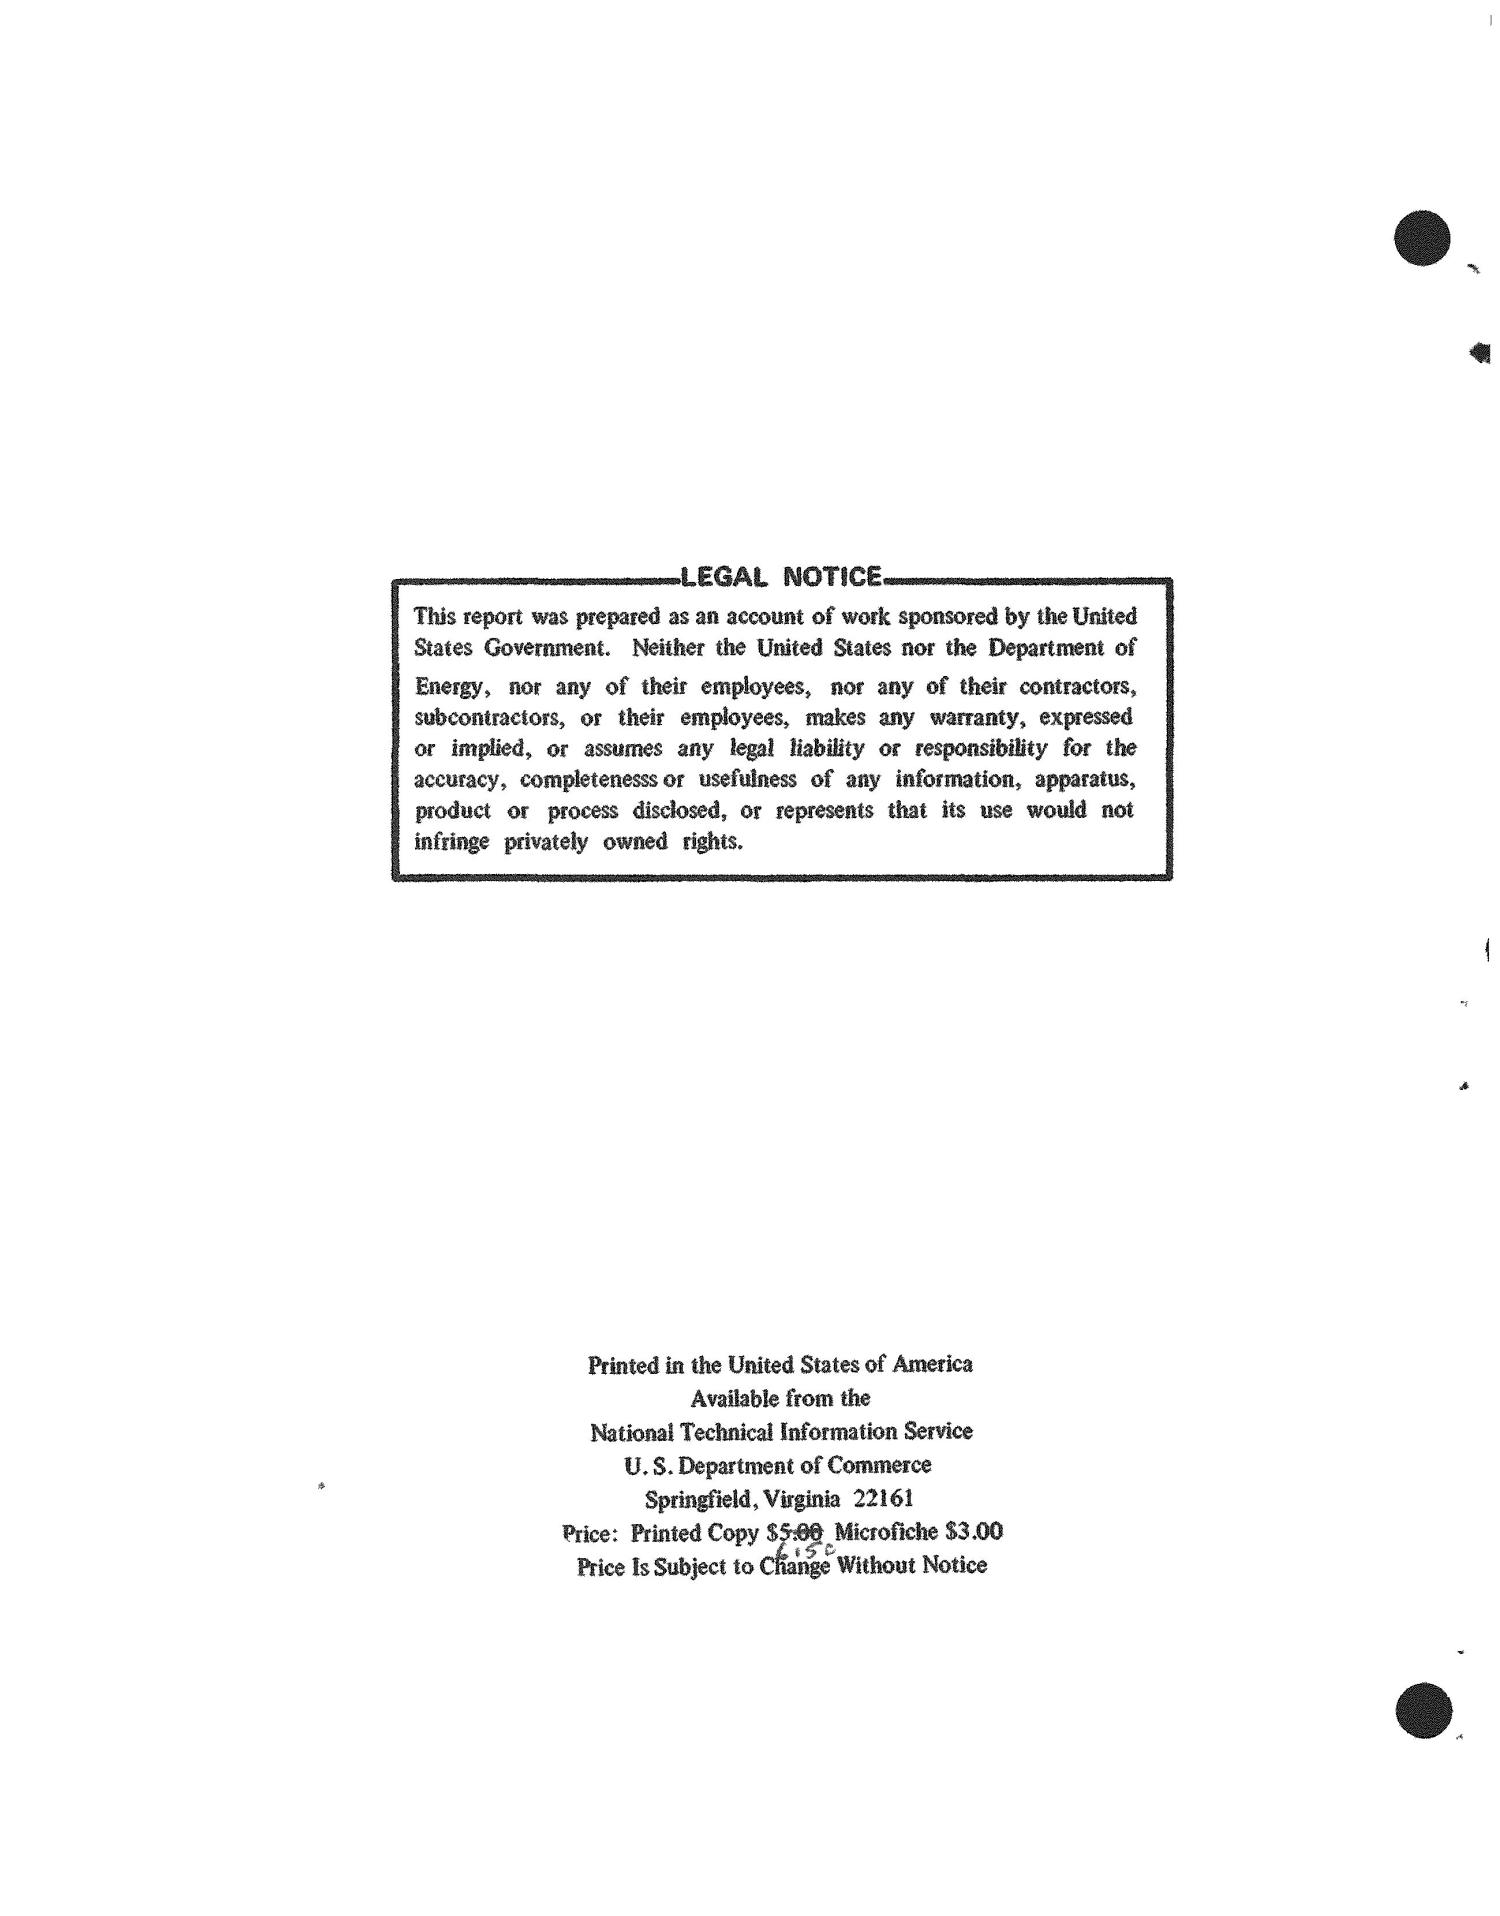 Chemistry research and development. Research and development semiannual progress report, January--June 1977                                                                                                      [Sequence #]: 4 of 121